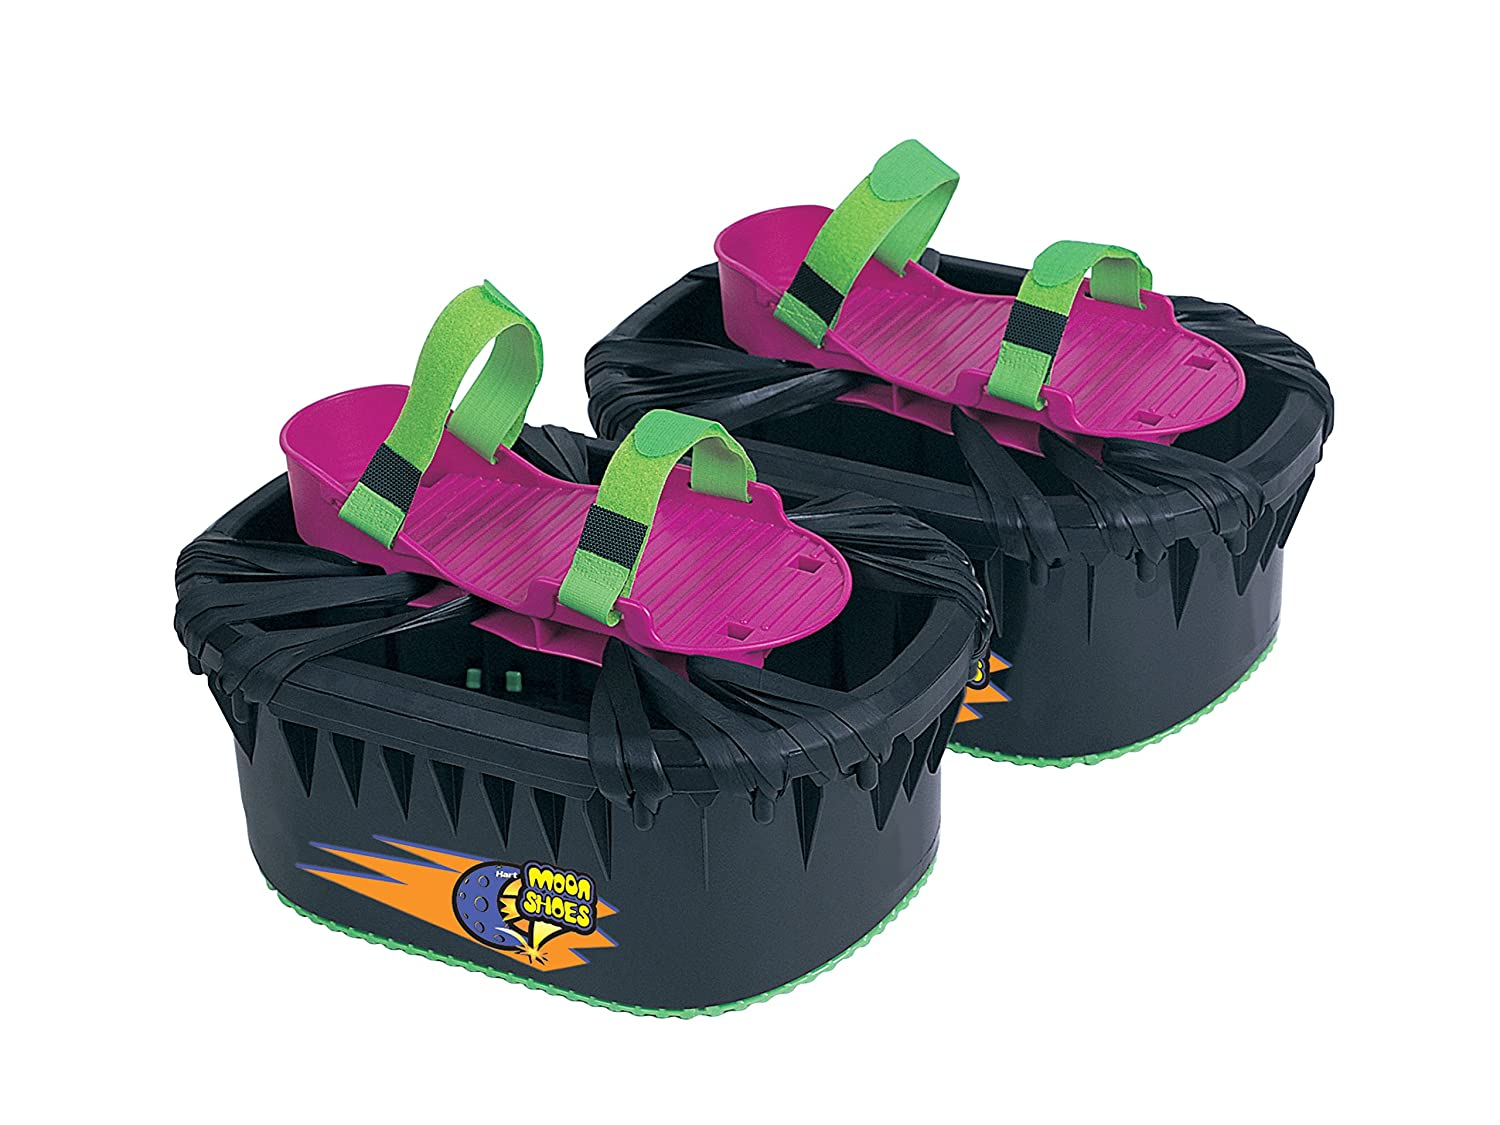 online retailer 3b04d c3d06 Big Time Toys Moon Shoes Bouncy Shoes - Mini Trampolines For your Feet -  One Size